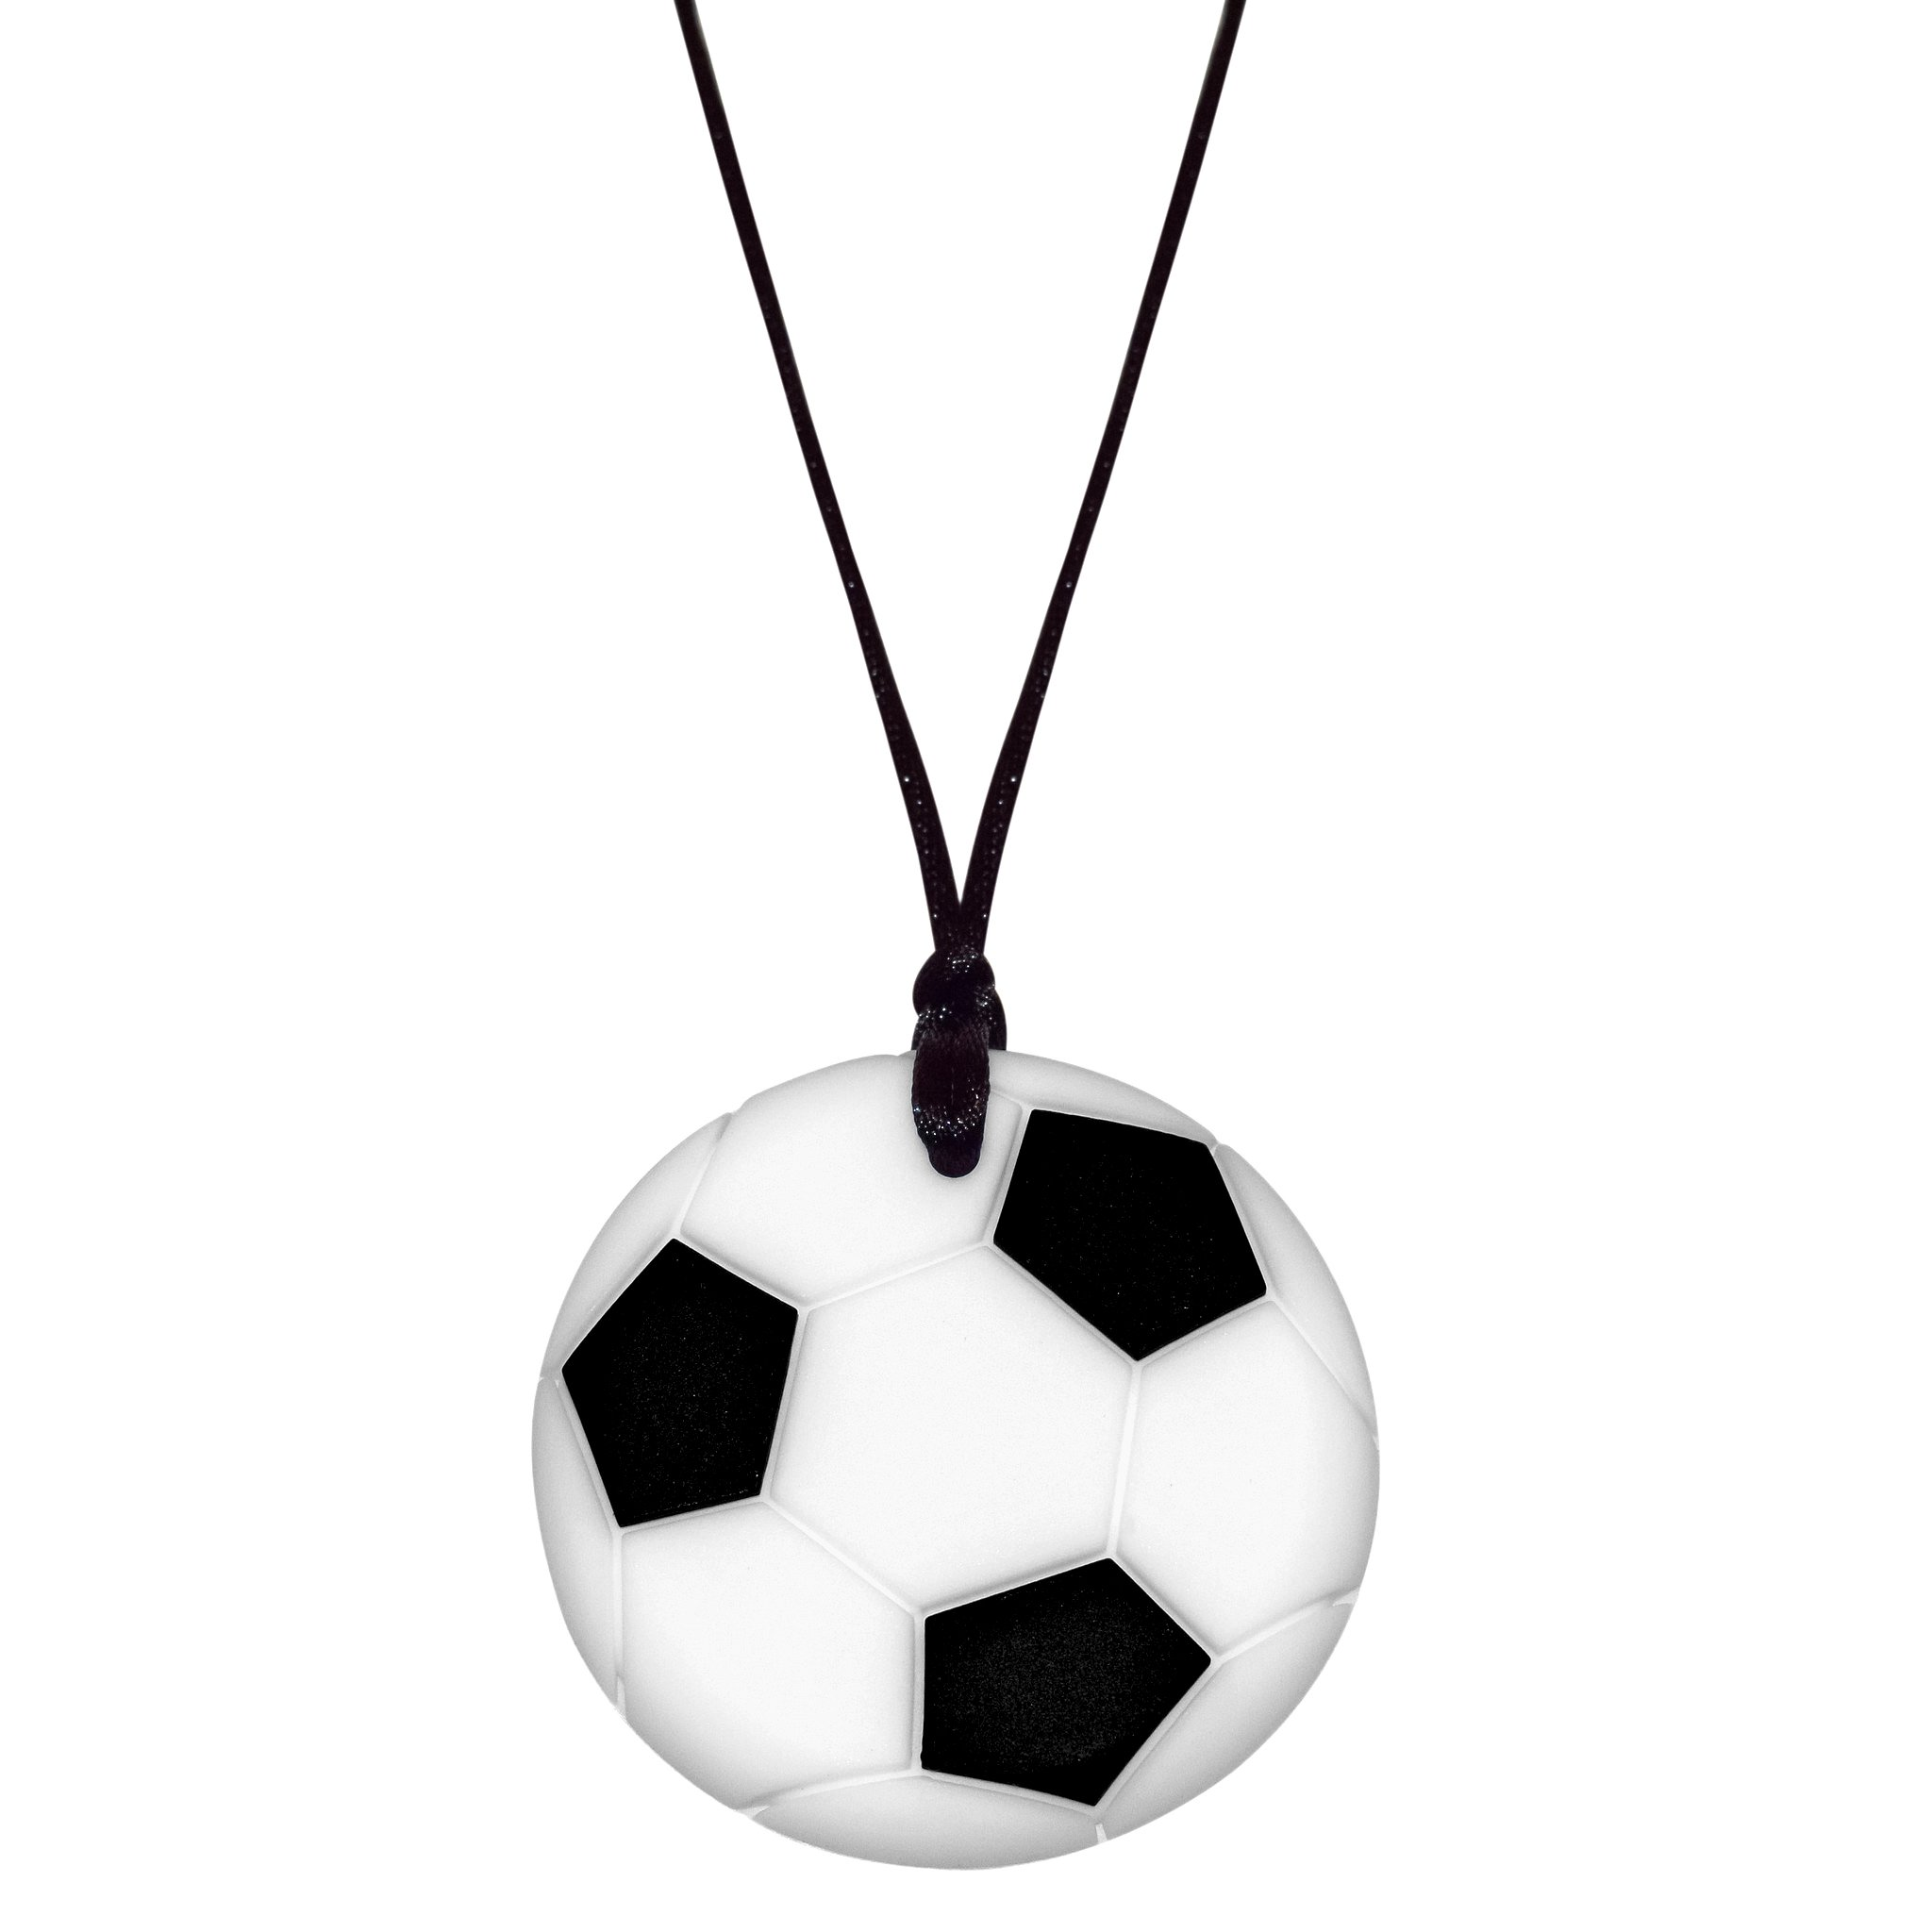 Sensory Oral Motor Aide Chewelry Necklace - Chewy Jewelry for Sensory-Focused Kids with Autism or Special Needs - Calms Kids and Reduces Biting/Chewing/Fidgeting – Soccer Ball